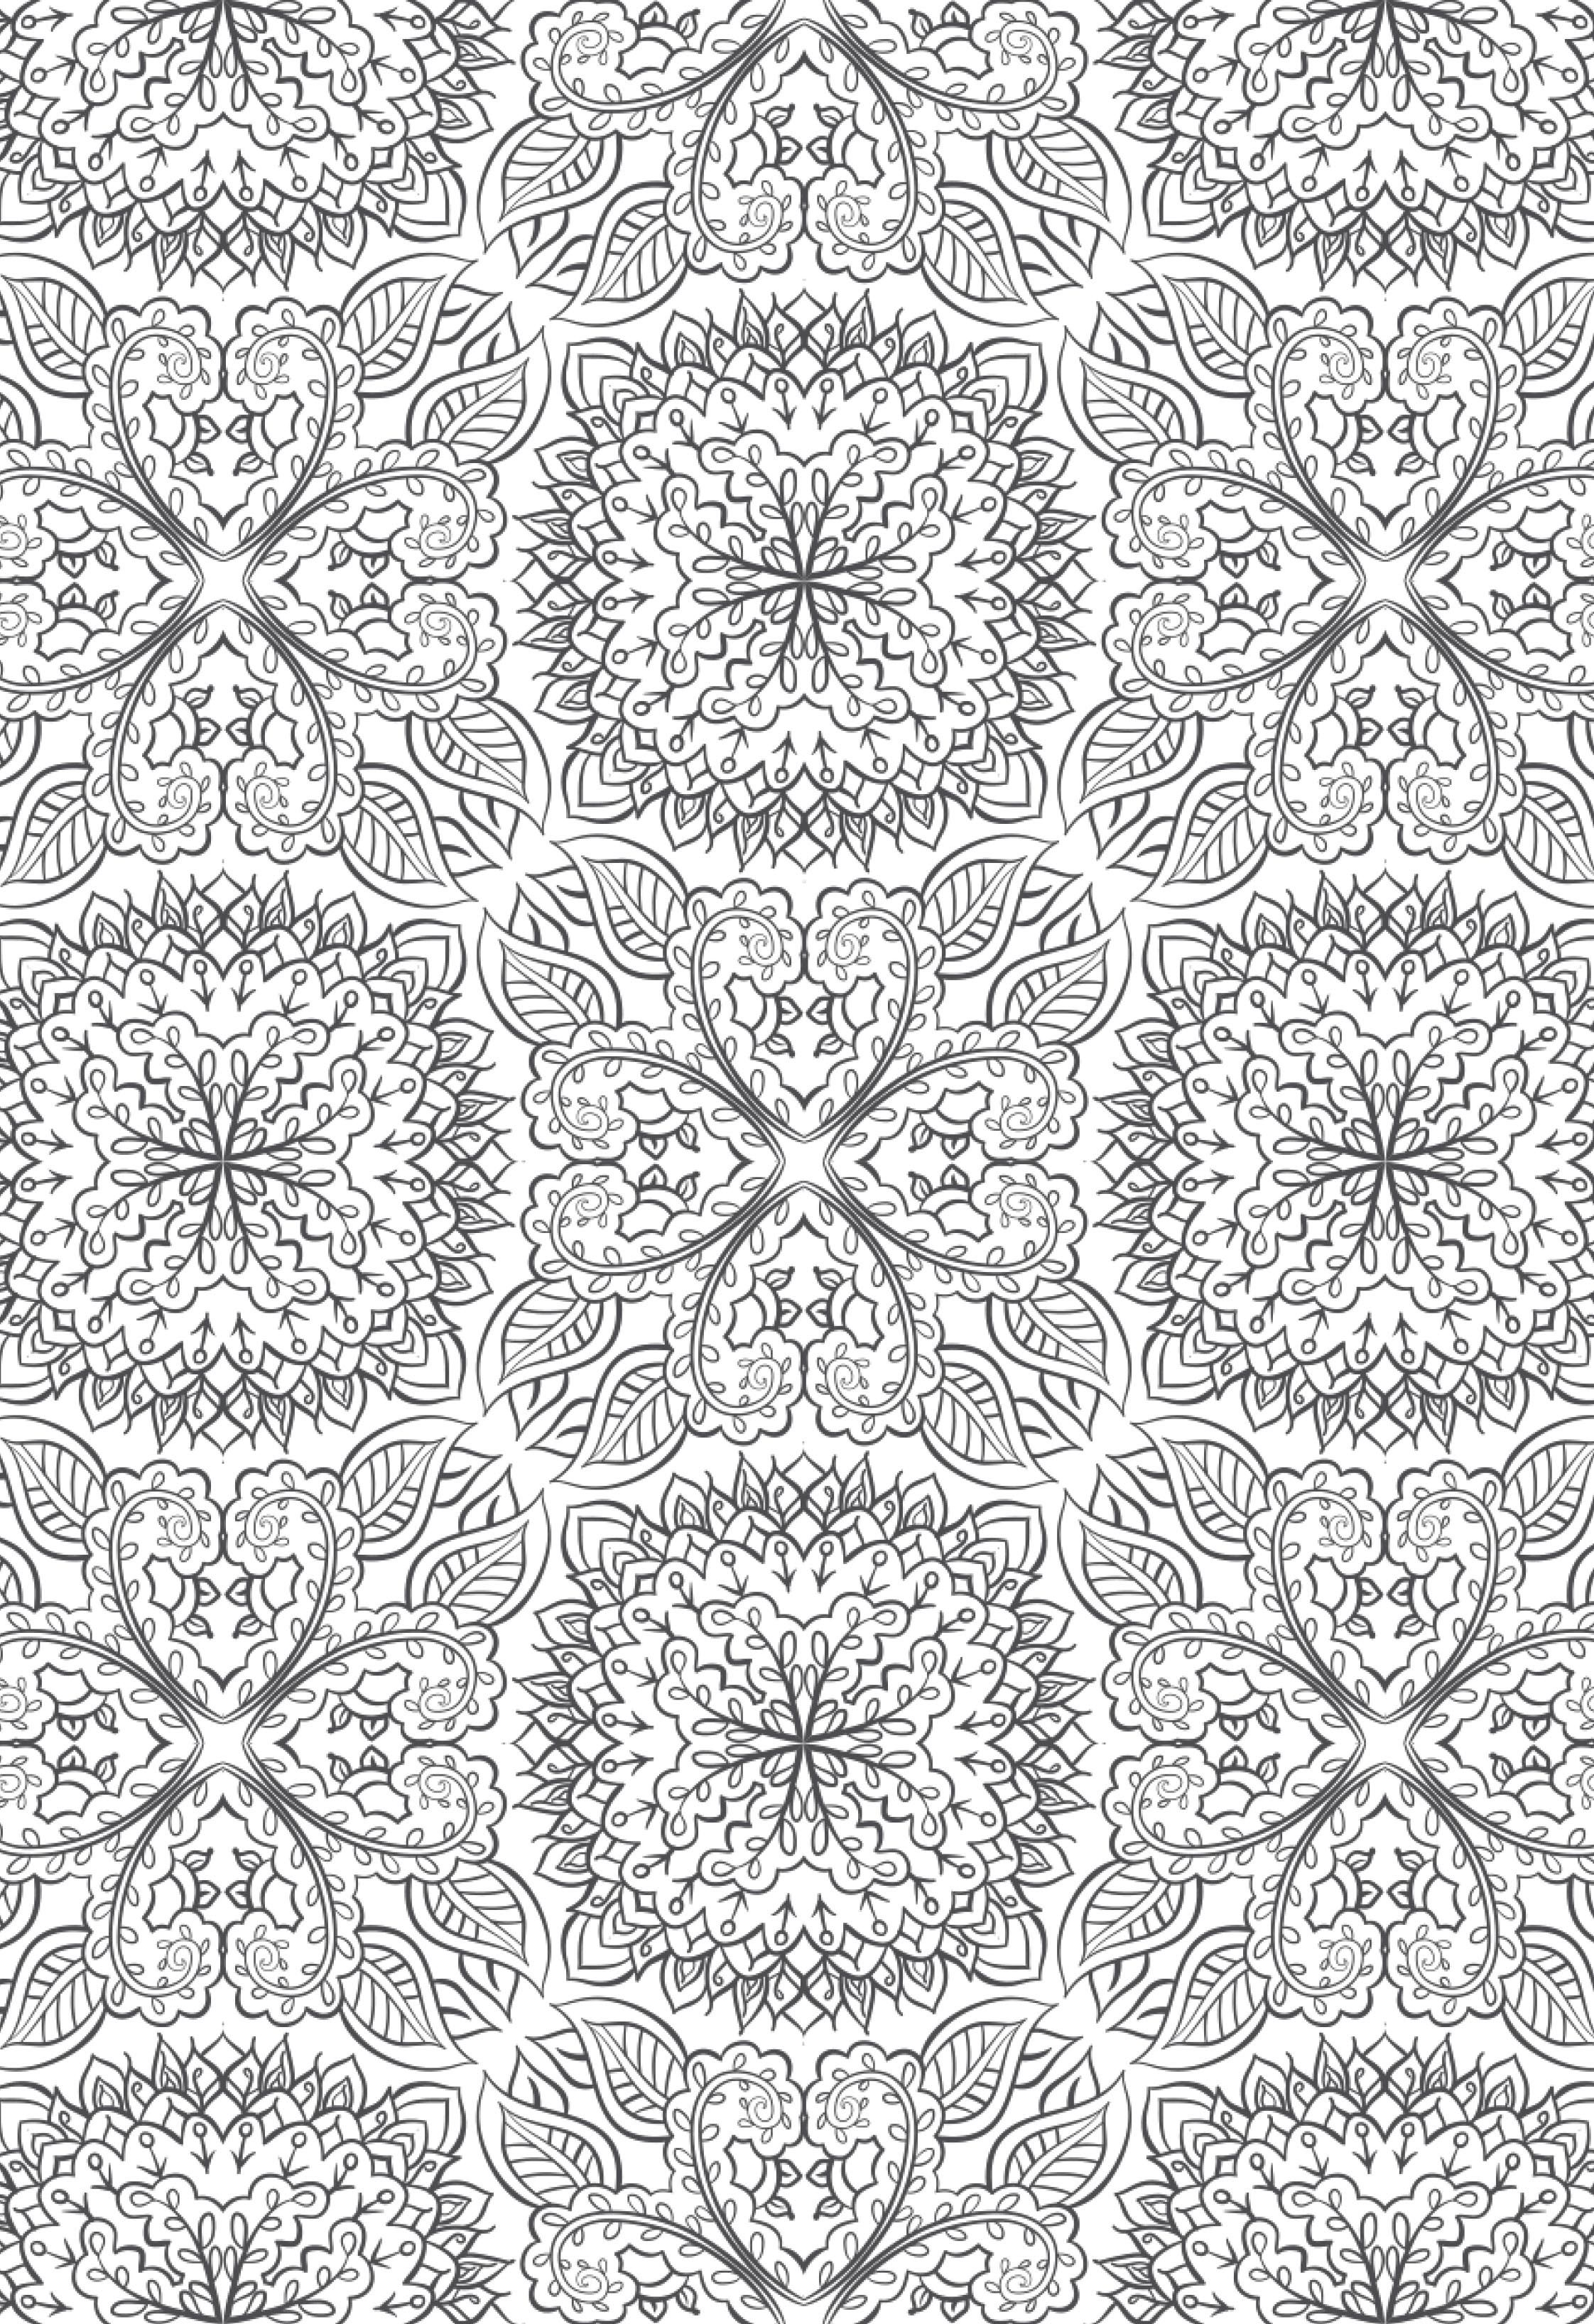 Card Making Downloads Zen Colors Free Coloring Pages Colouring Pages [ 3272 x 2244 Pixel ]